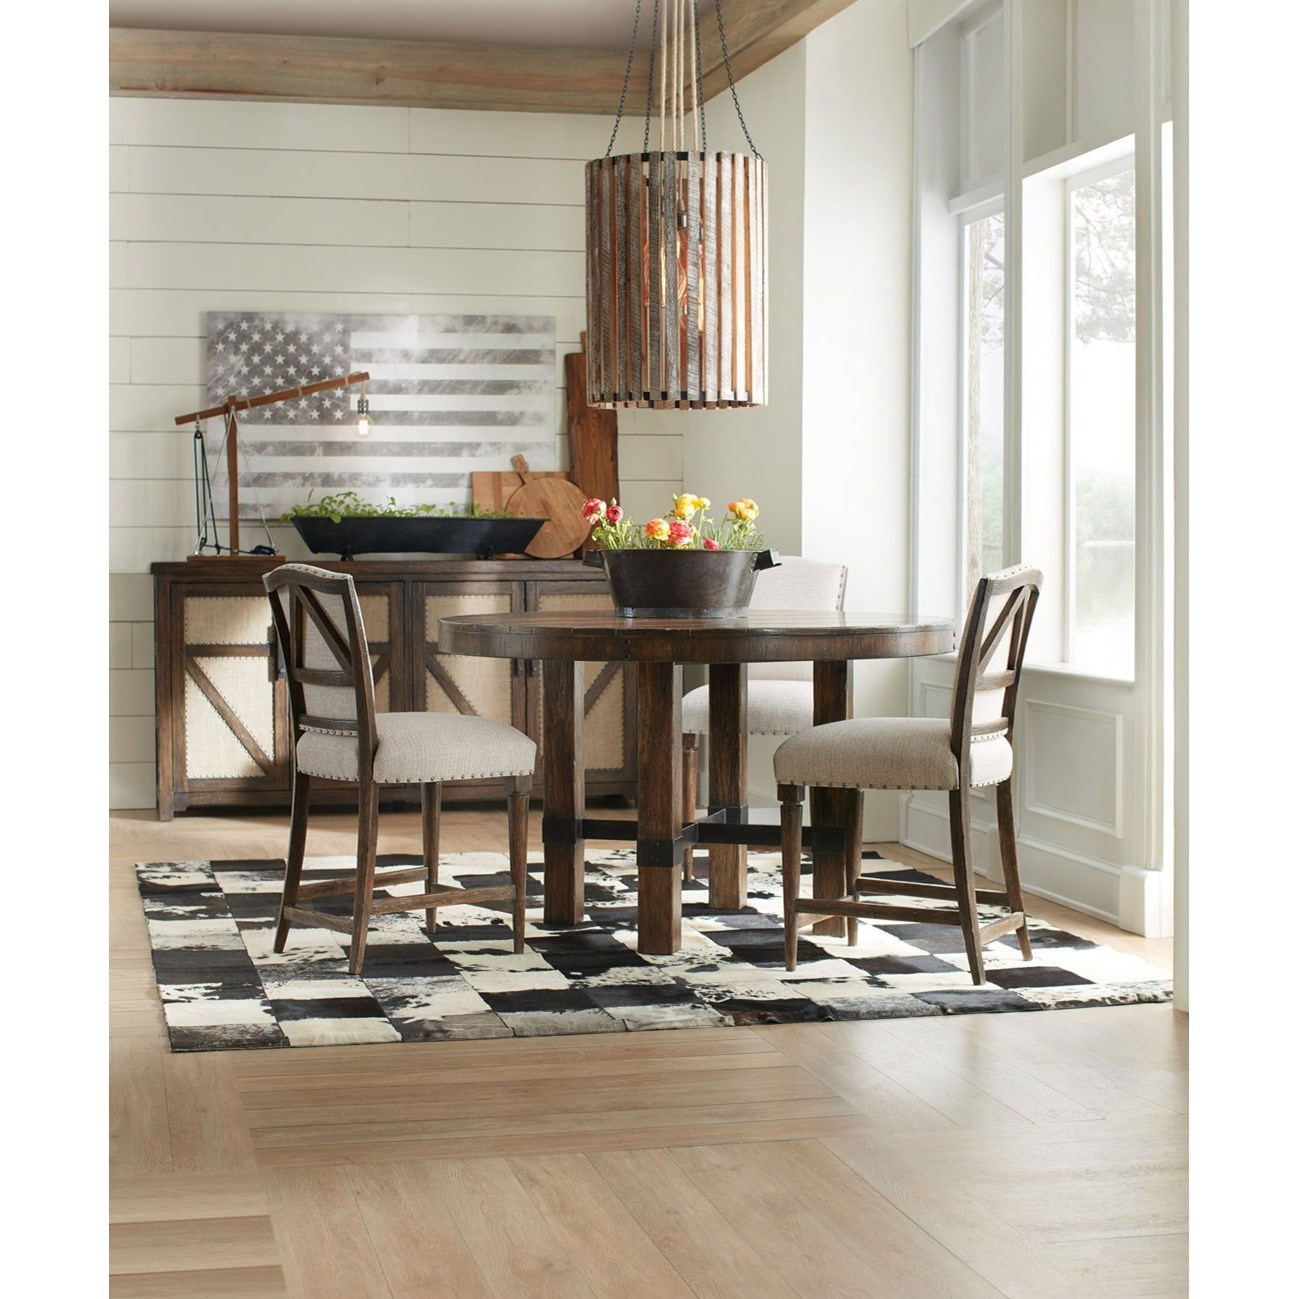 American Life - Roslyn County Casual Dining Room Group by Hooker Furniture at Miller Waldrop Furniture and Decor